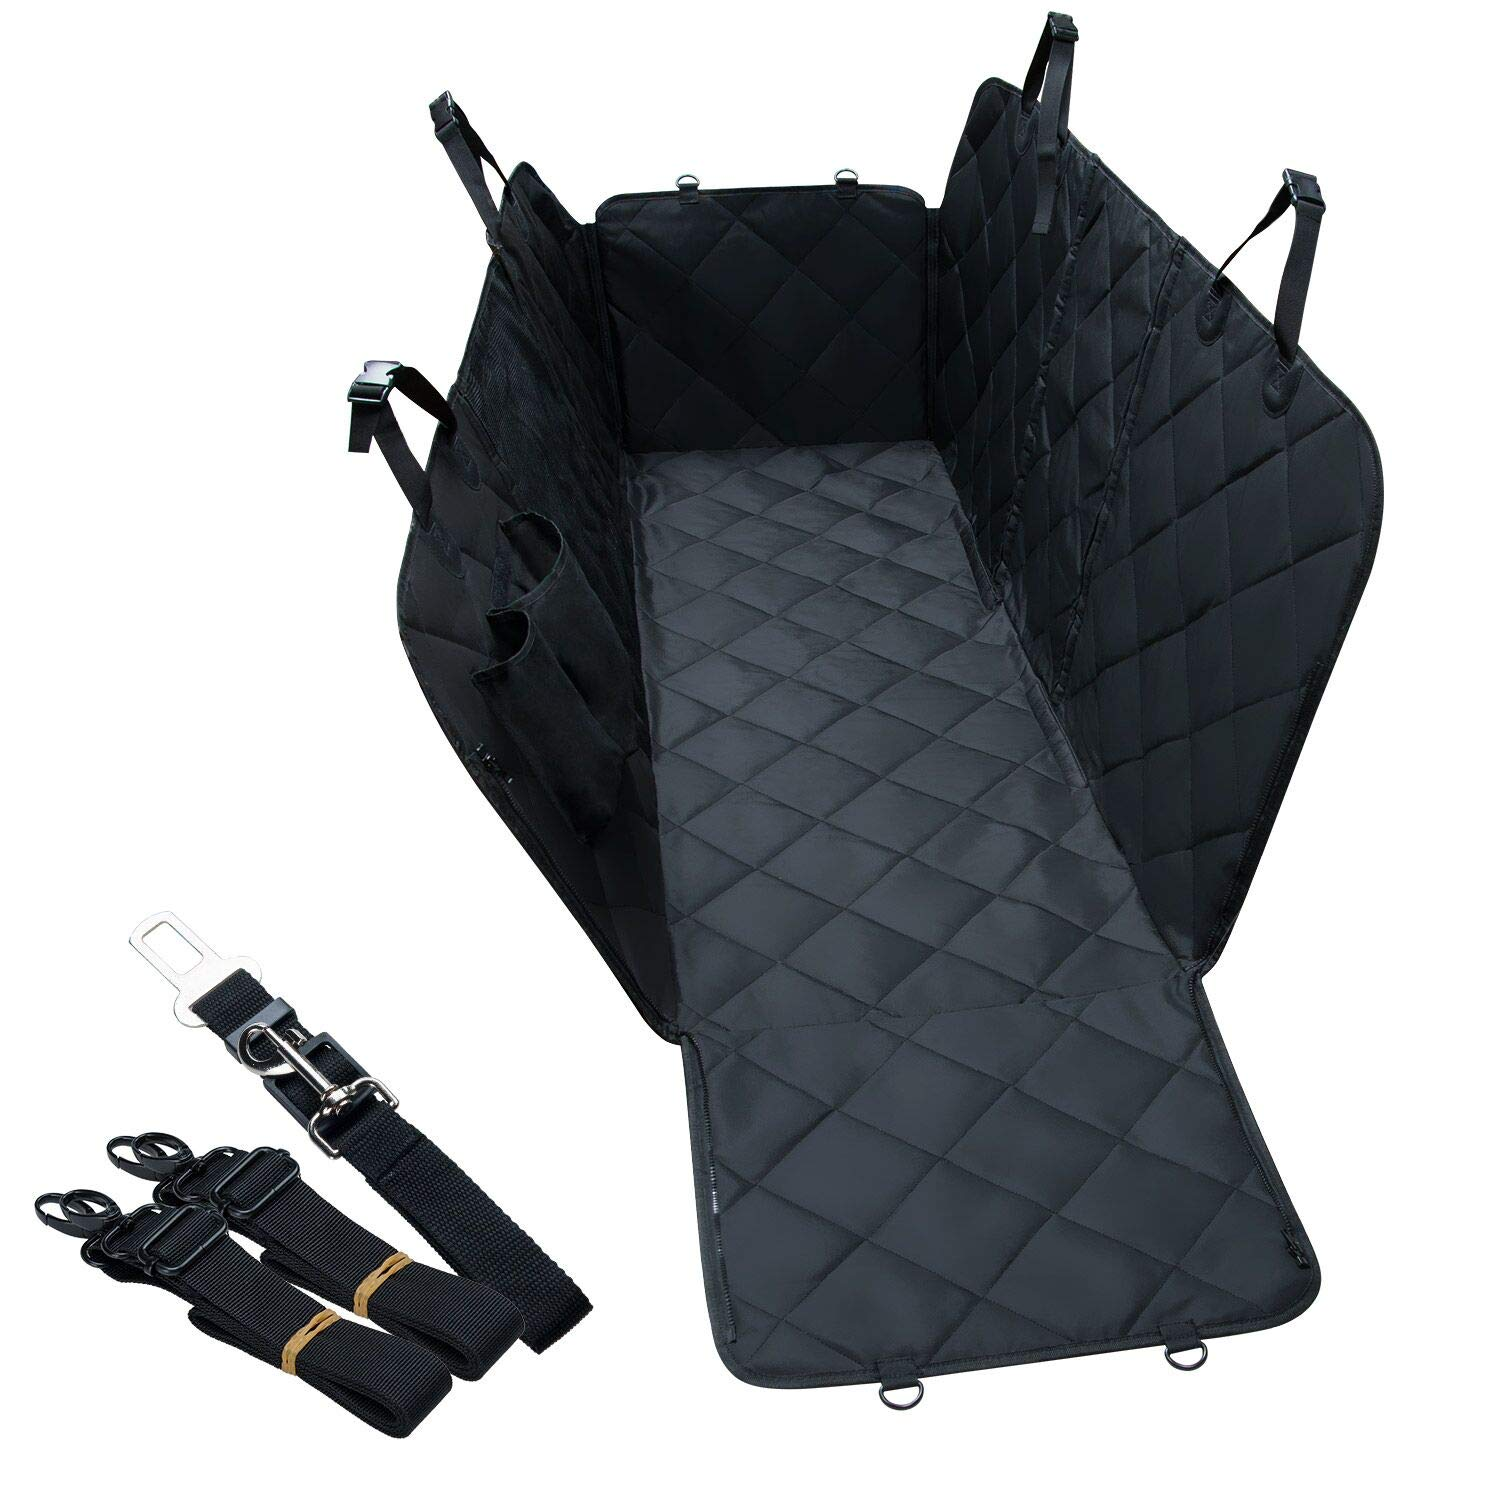 Lychee Pet Dog Car Seat Cover - Scratch Proof & Nonslip Backing, Dog Travel Hammock with Seatbelt Leash and Storage Bag,137x147cm,Universal Fits All Cars(Black) 05-003-009